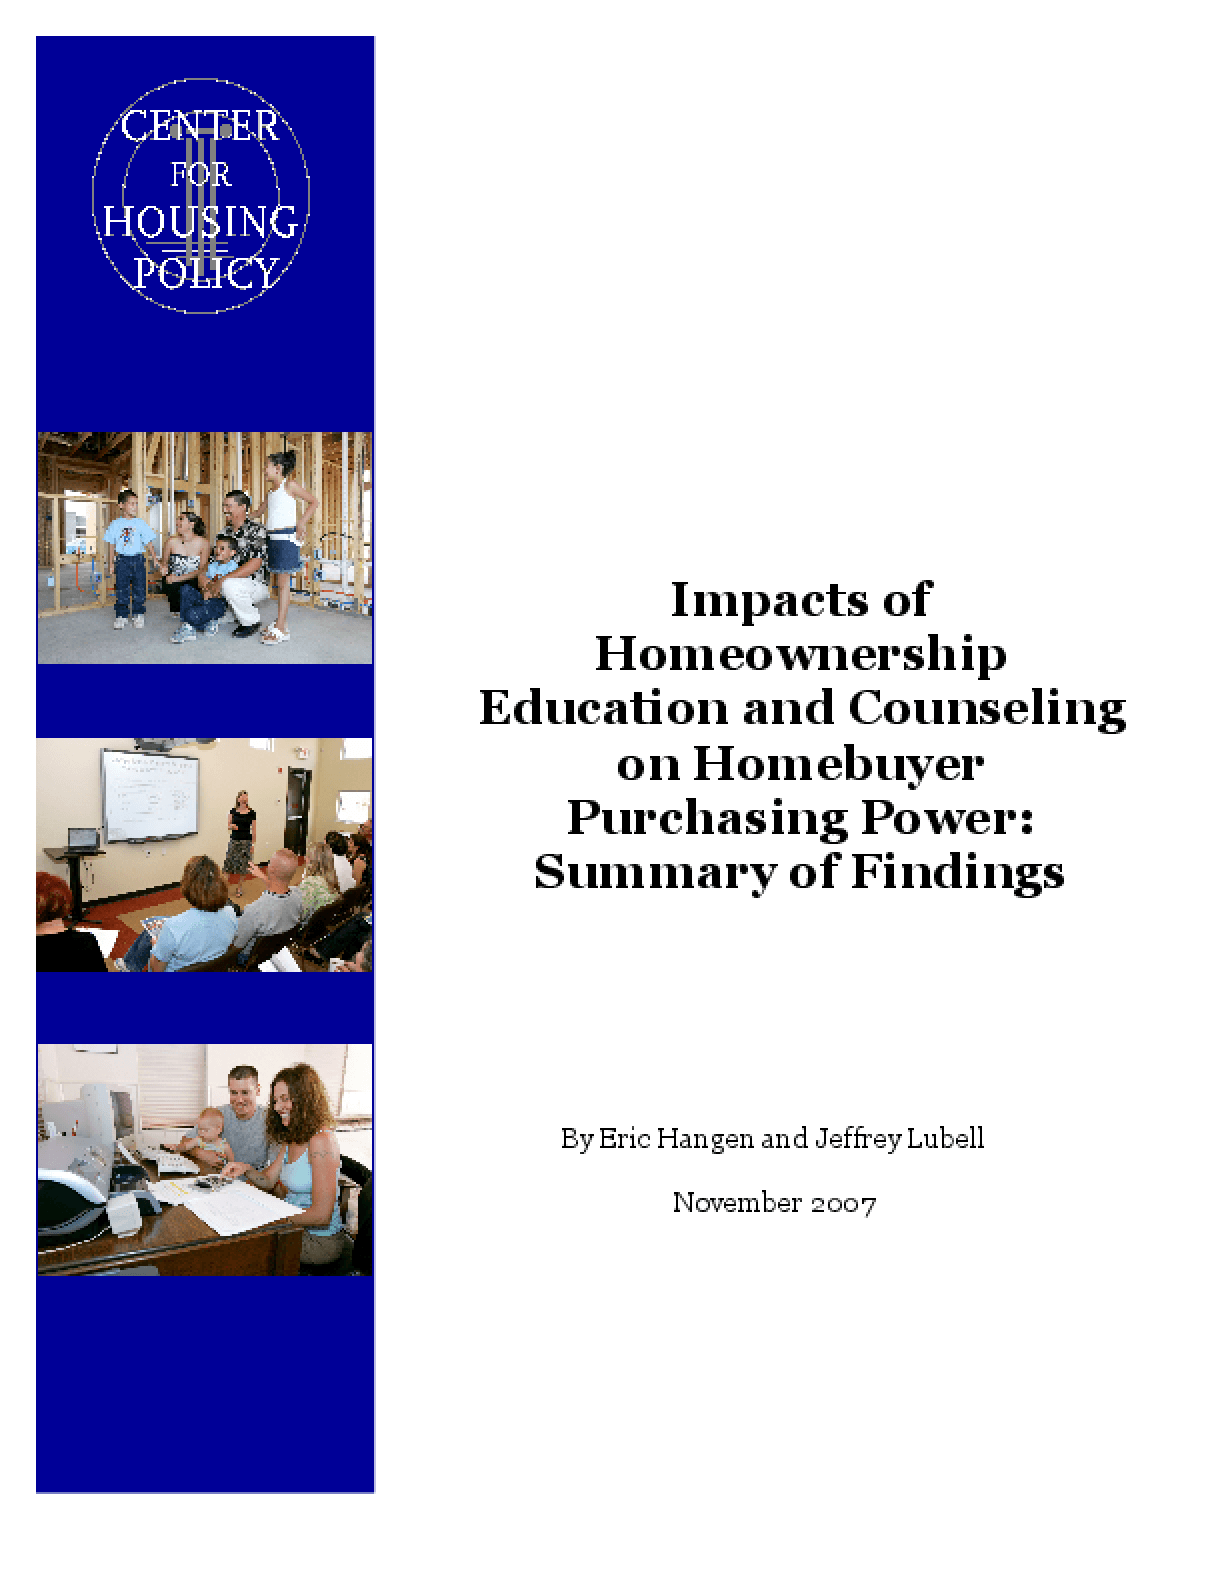 Impacts of Homeownership Education and Counseling on Homebuyer Purchasing Power: Summary of Findings